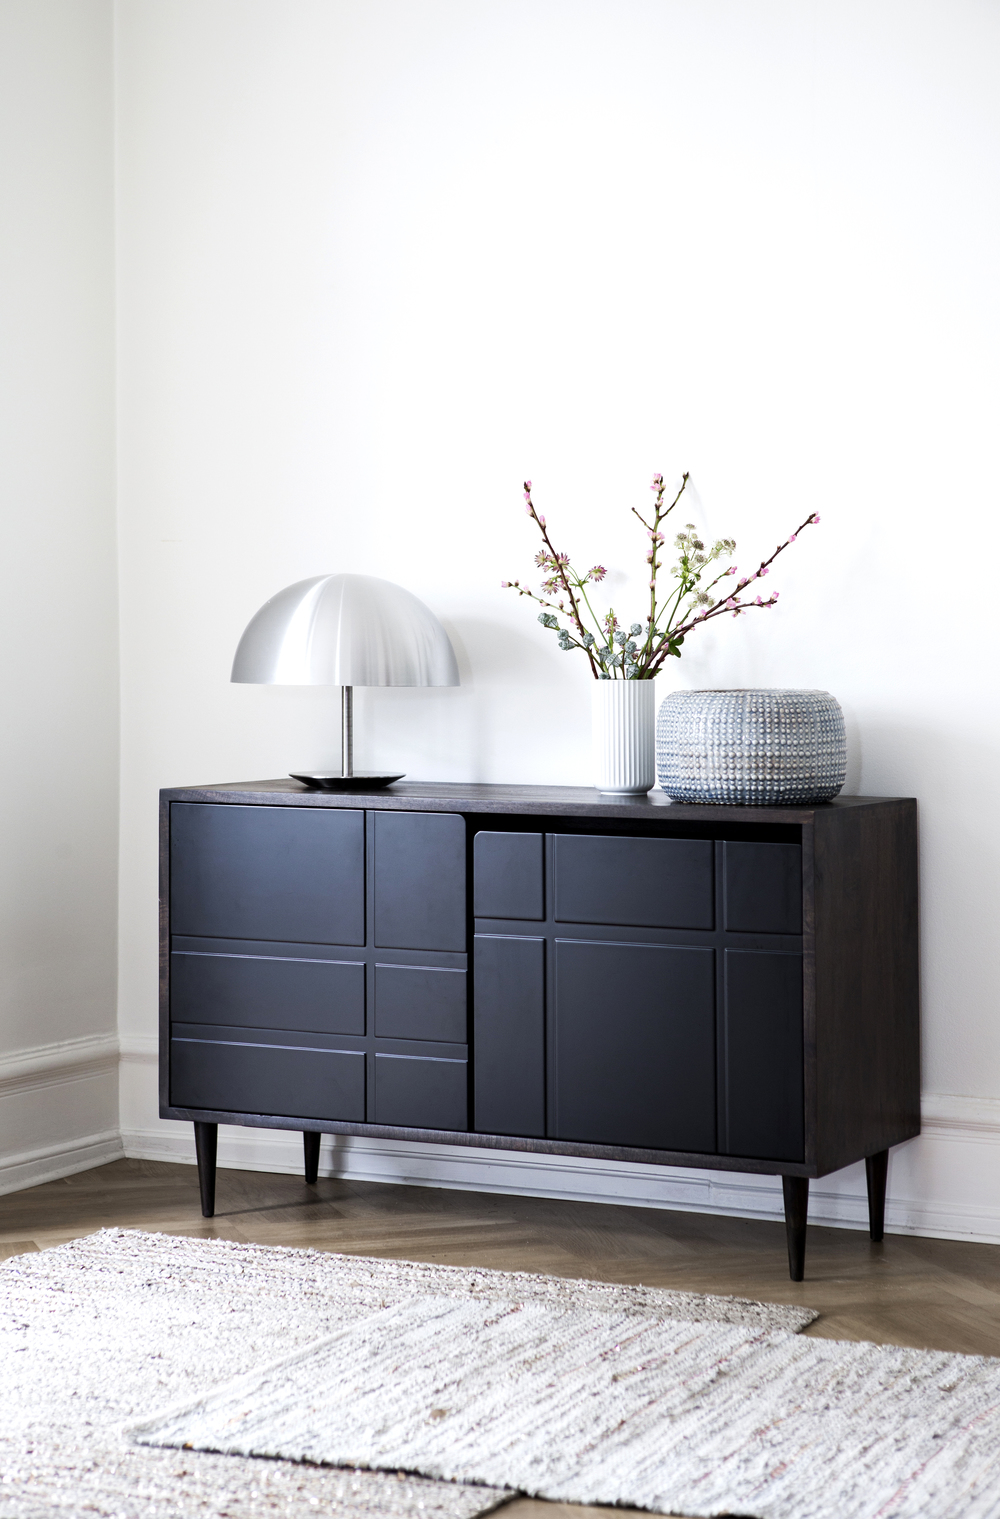 Sideboard for Mater Lifestyle